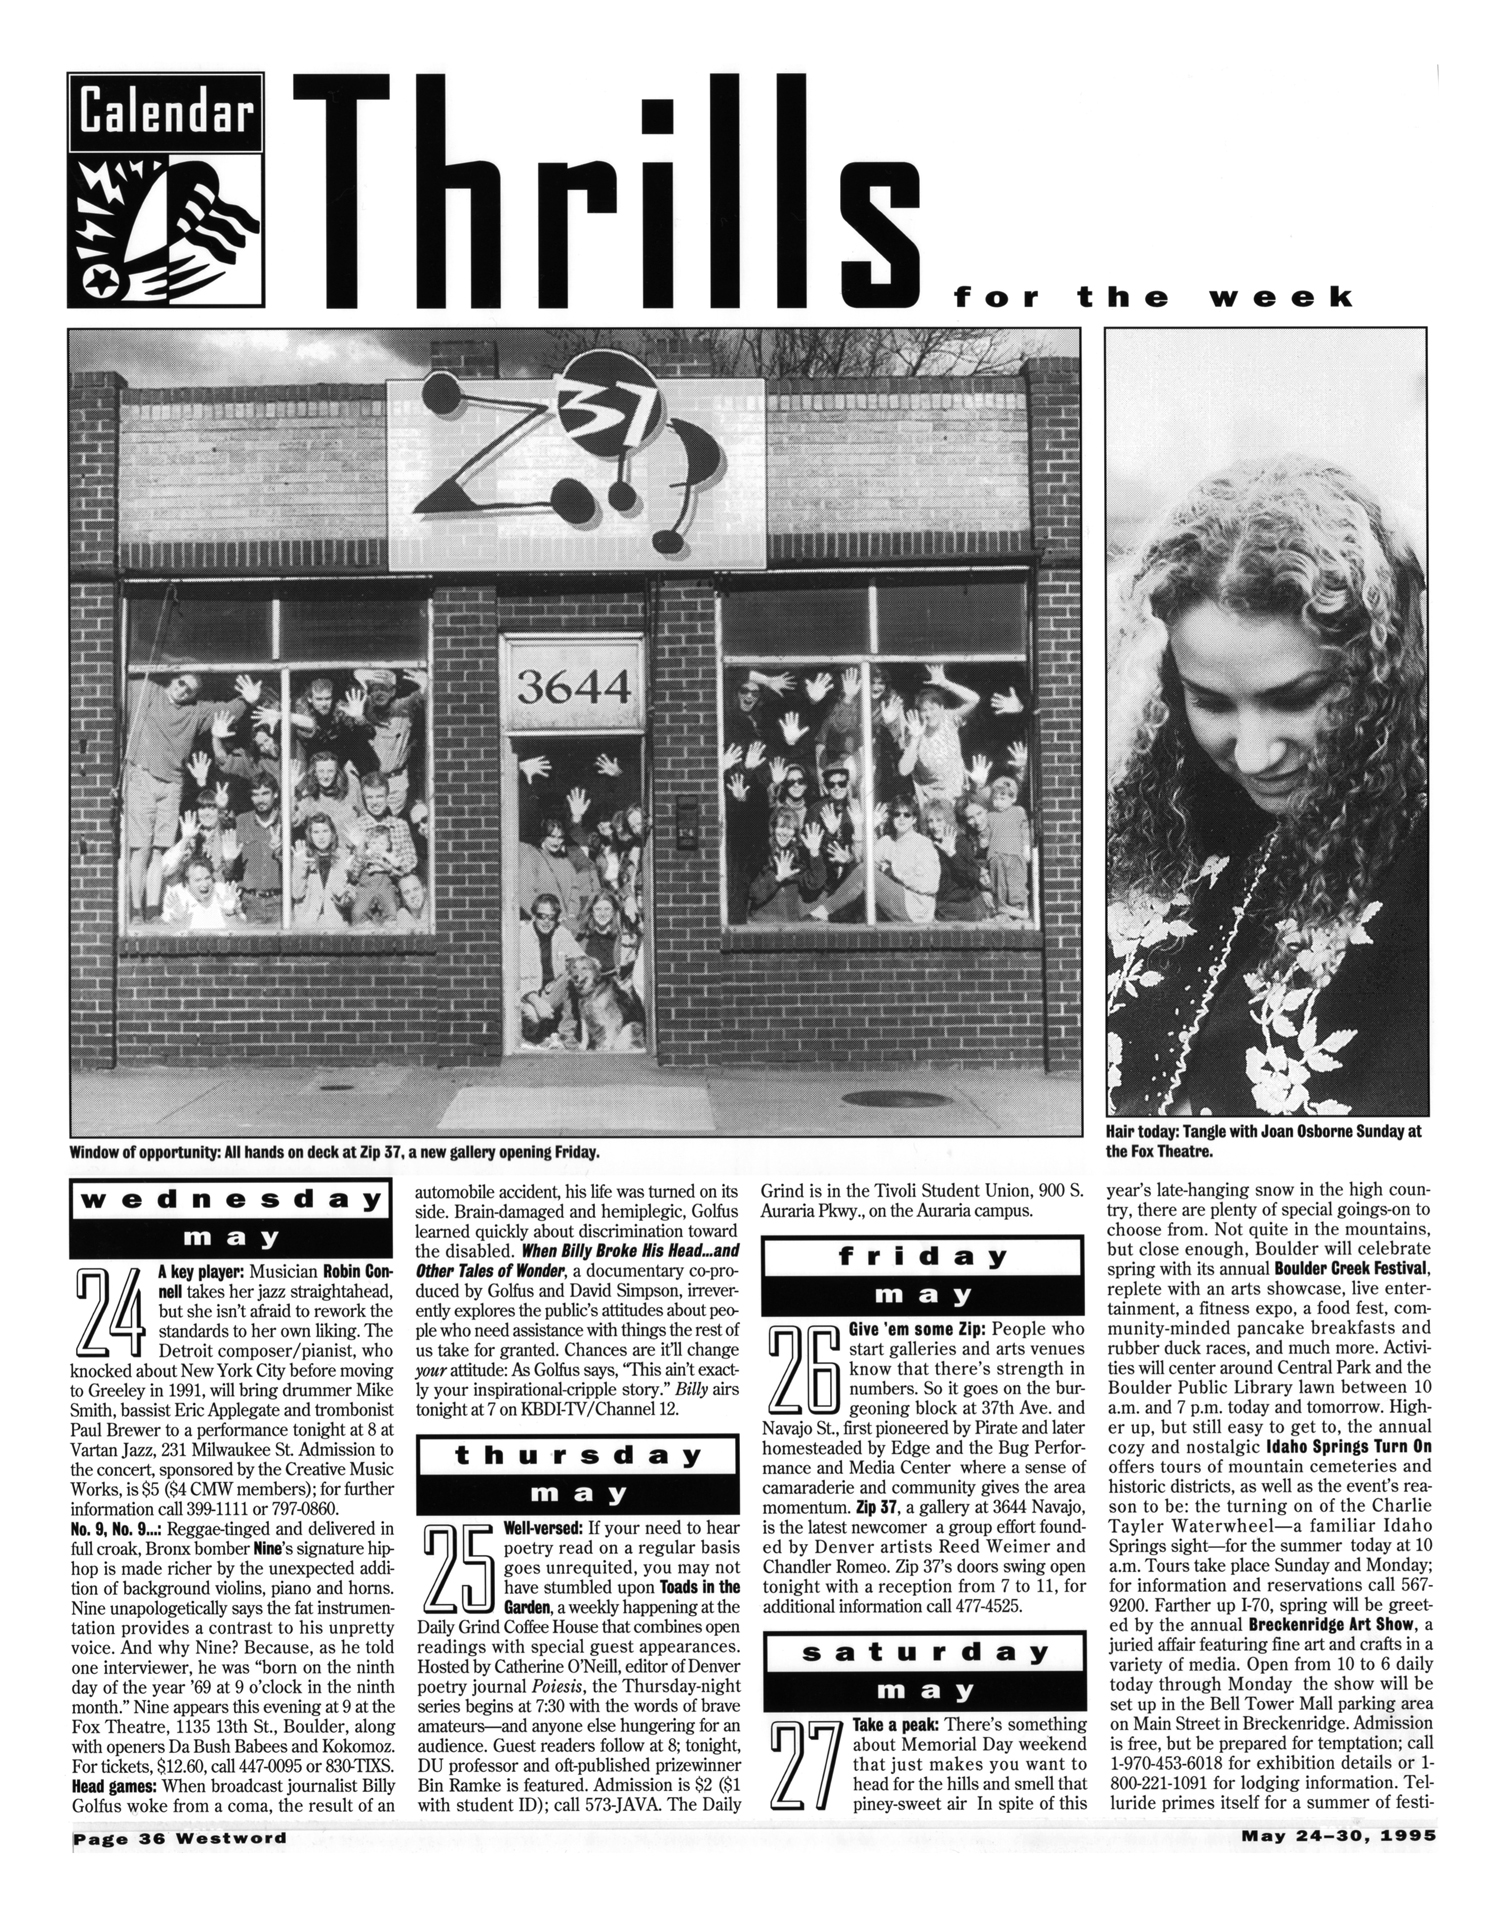 Zip 37 Opening feature Westword May 24, 1995 kennybe.com